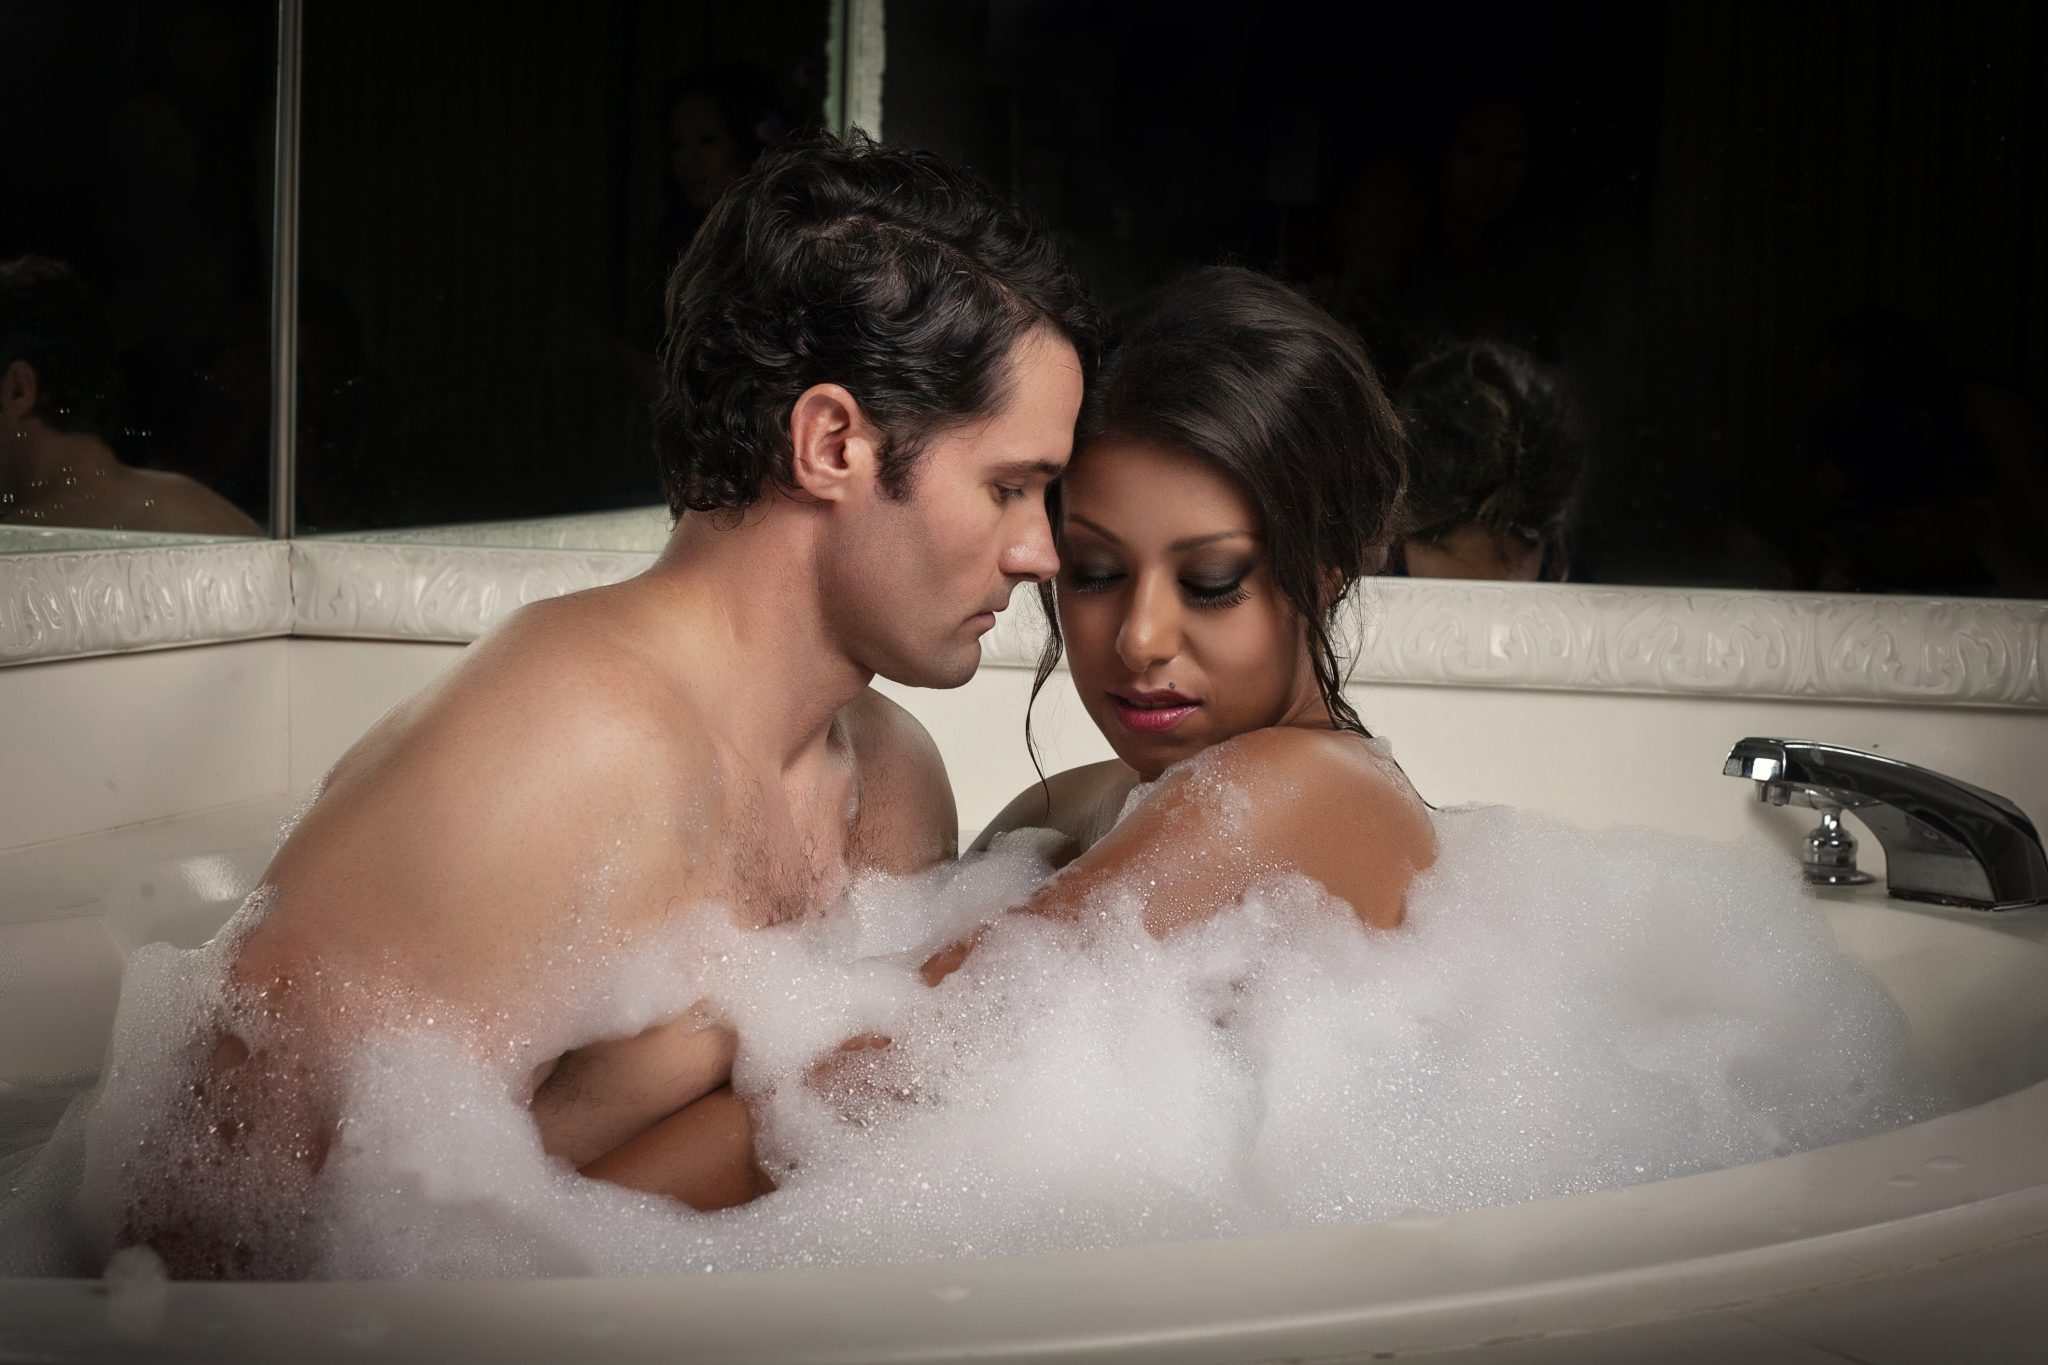 bubble bath for this couple in boudoir photography shoot